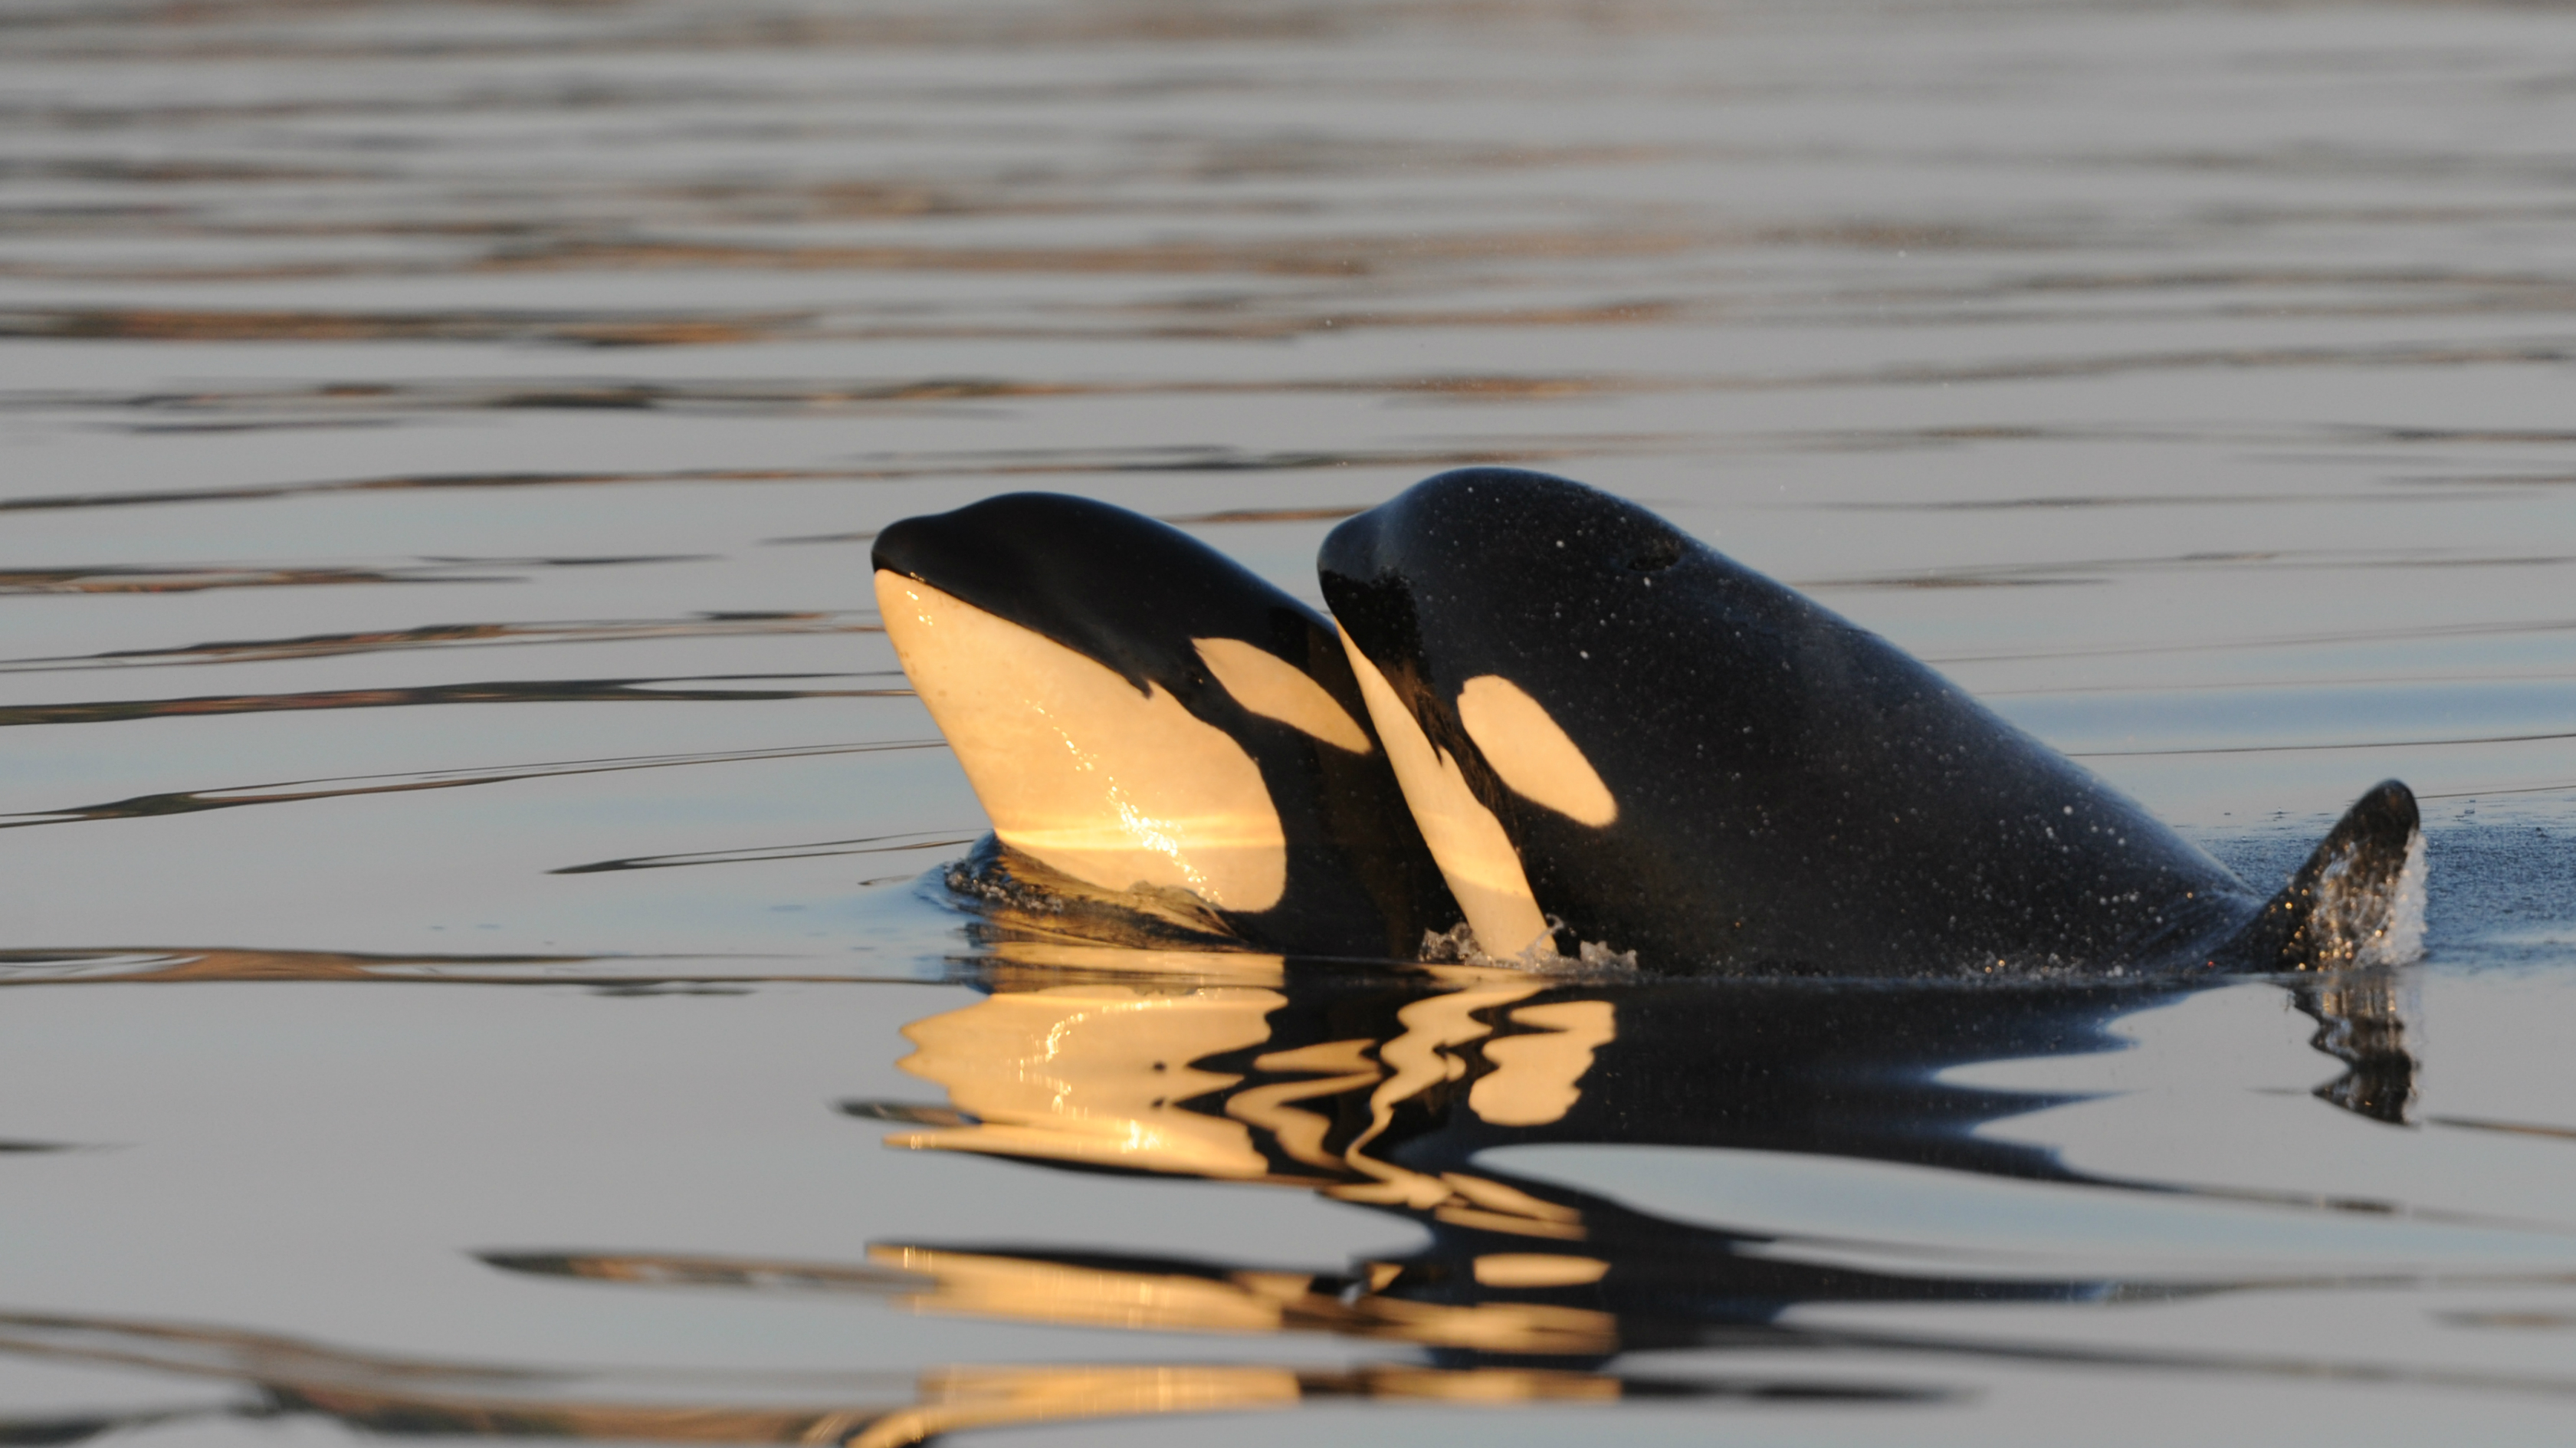 two-resident-killer-whales_copyright-kenneth-balcomb-center-for-whale-research-_20110911kcb_sj2-192